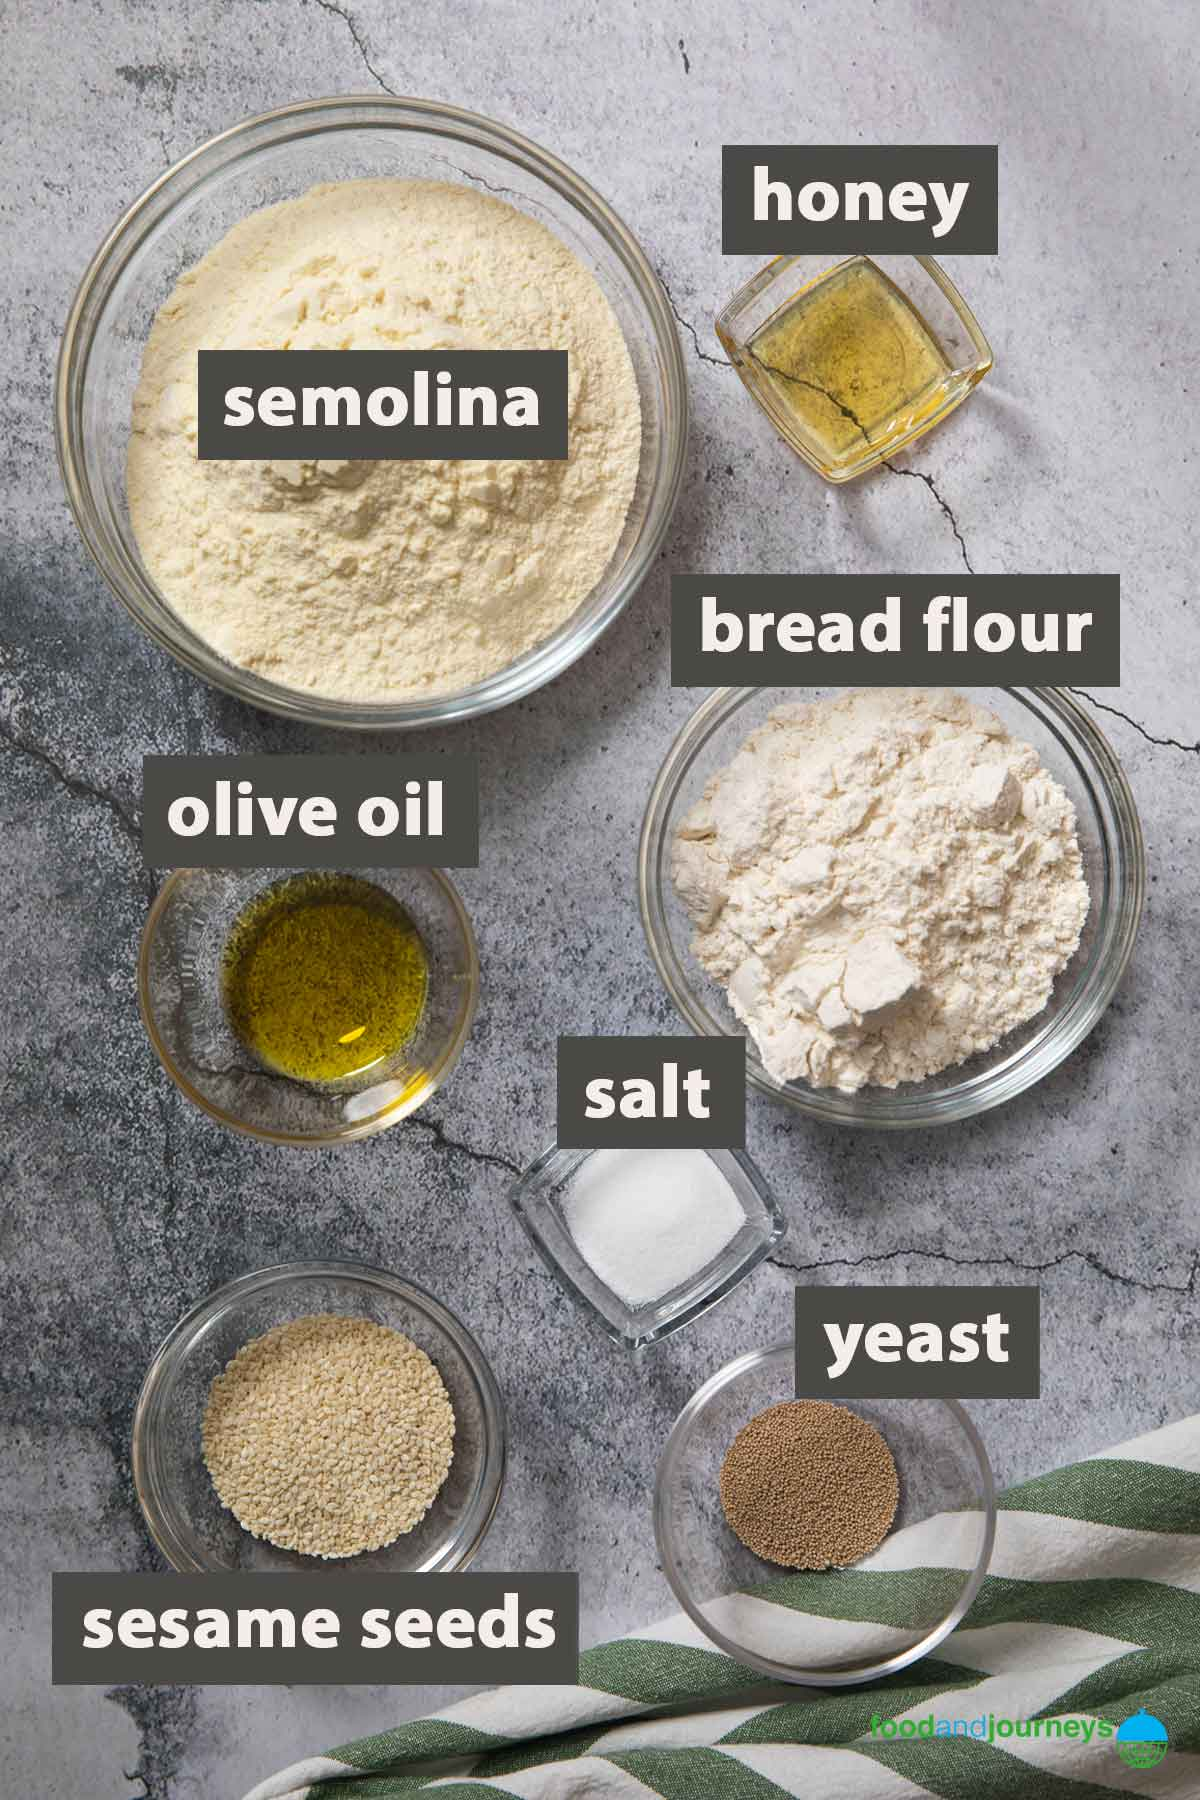 An image showing all the ingredients you need to prepare pane Siciliano at home.